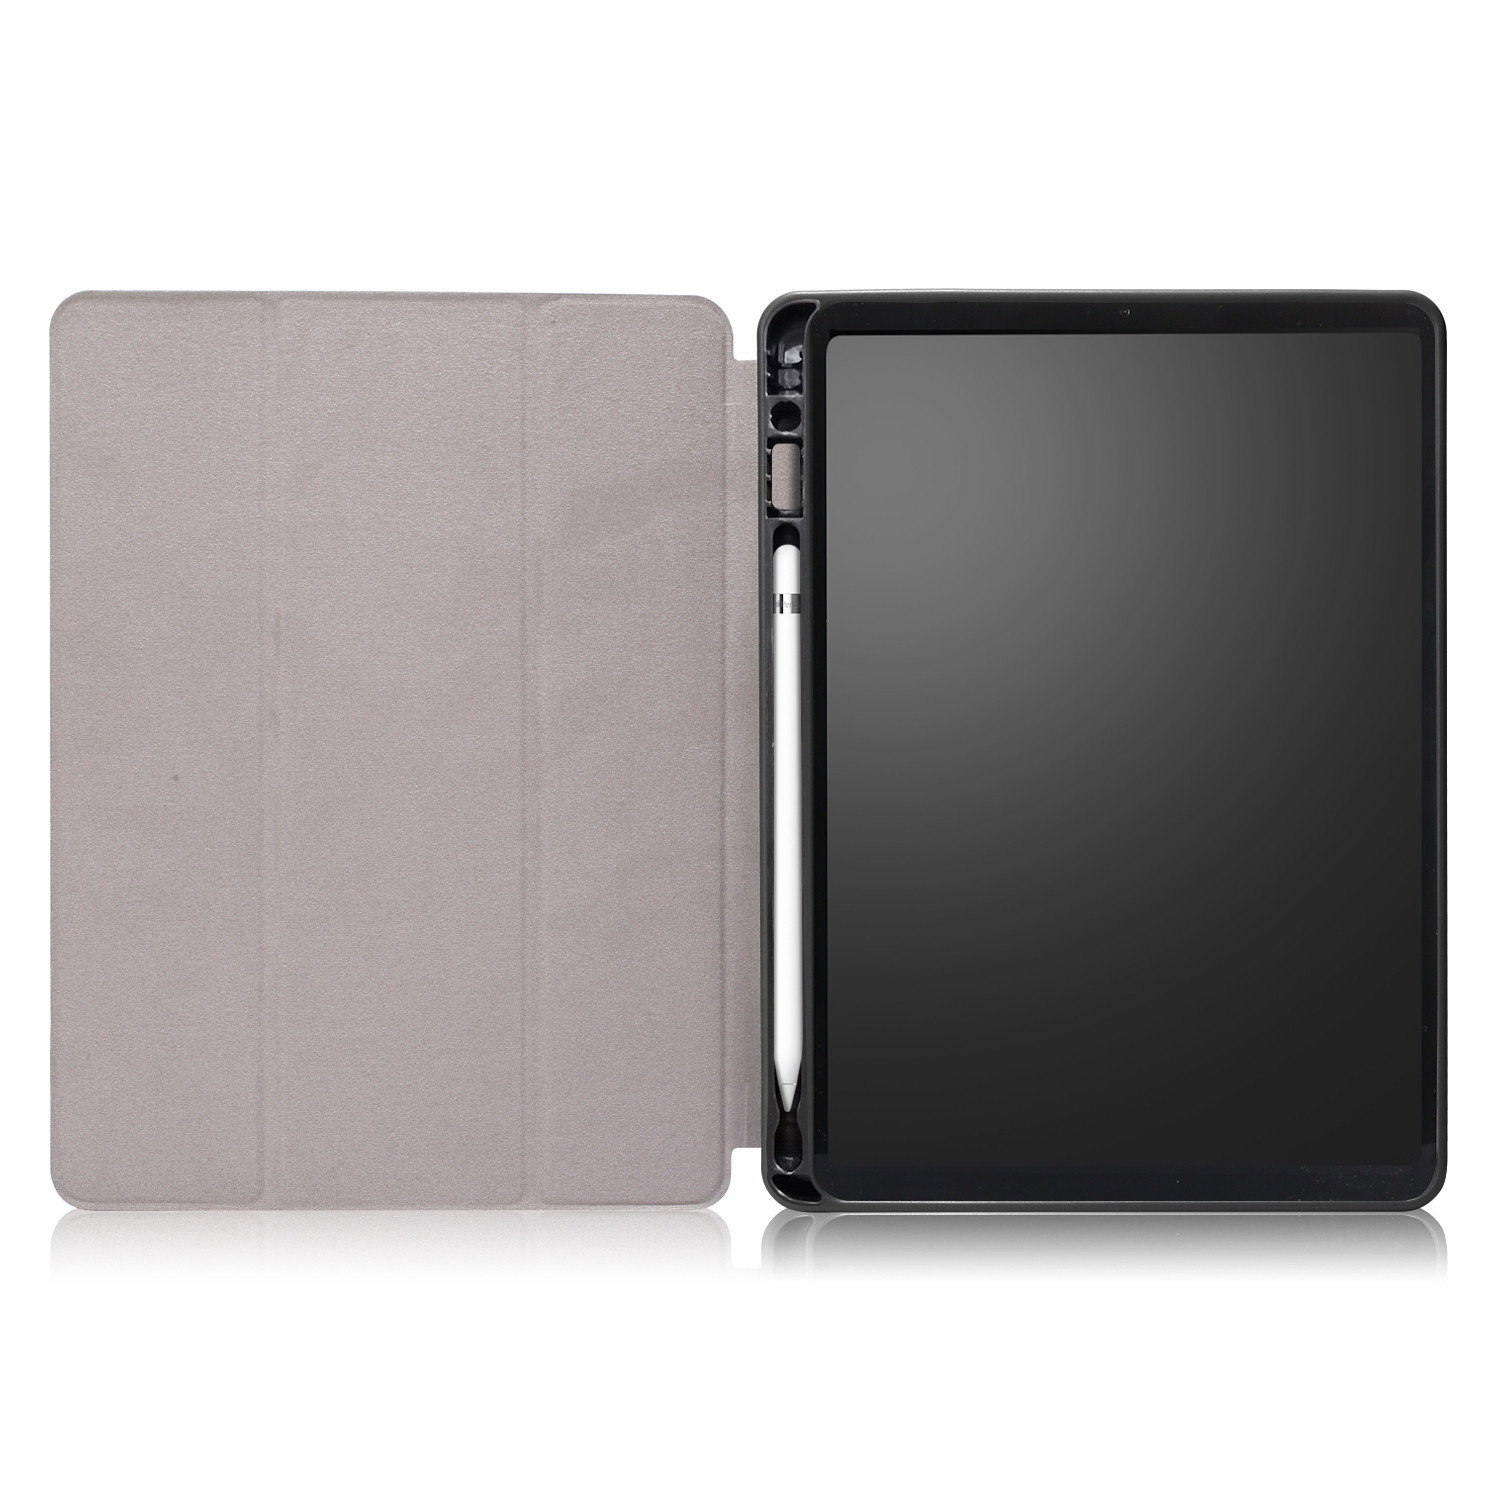 Pencil 10.2 Folding For Funda Tablet Case Holder IPad Inch Smart 2020 with Stand Magnetic